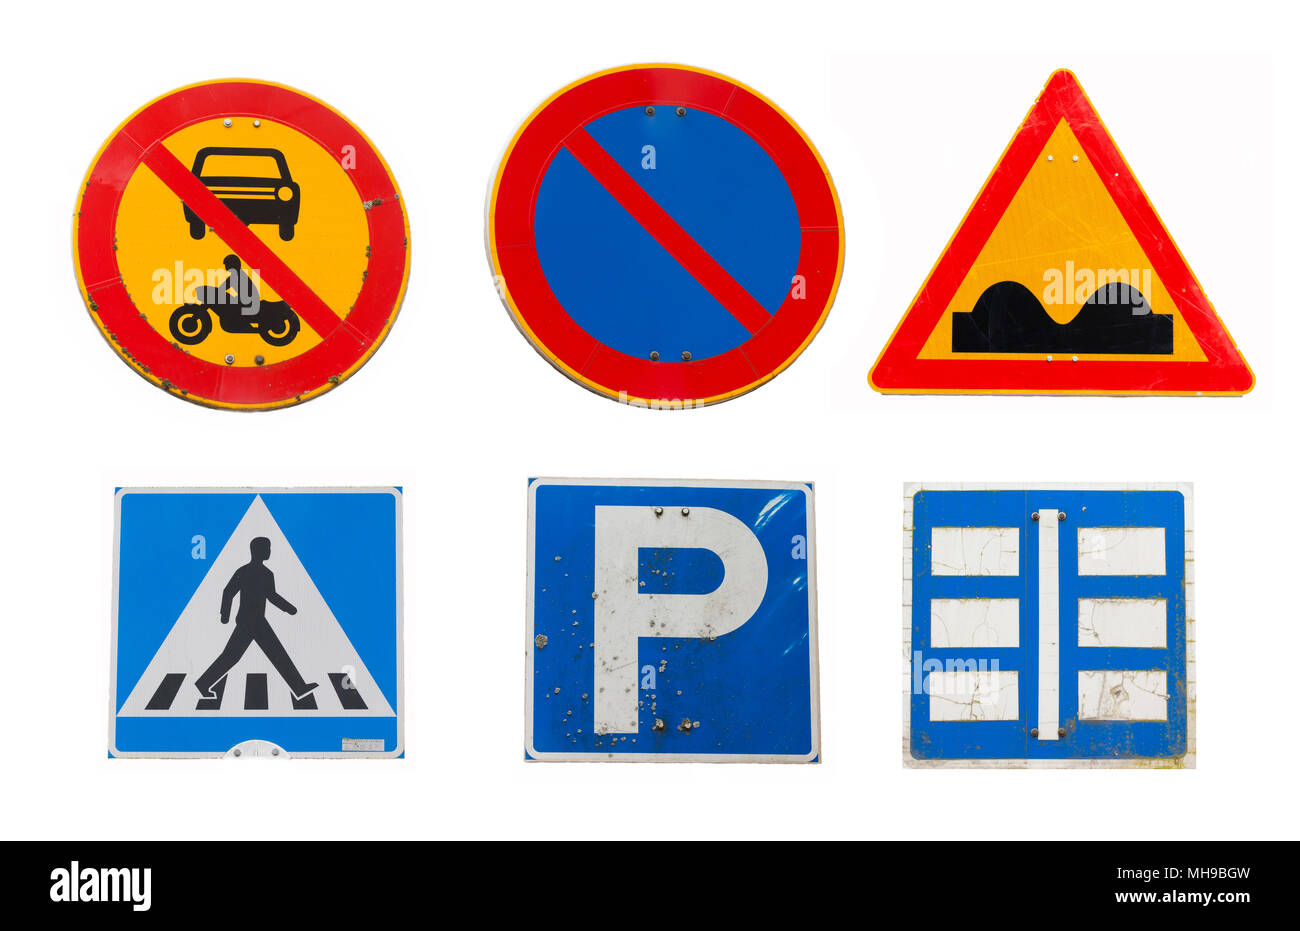 Collage of traffic road signs on white background - Stock Image